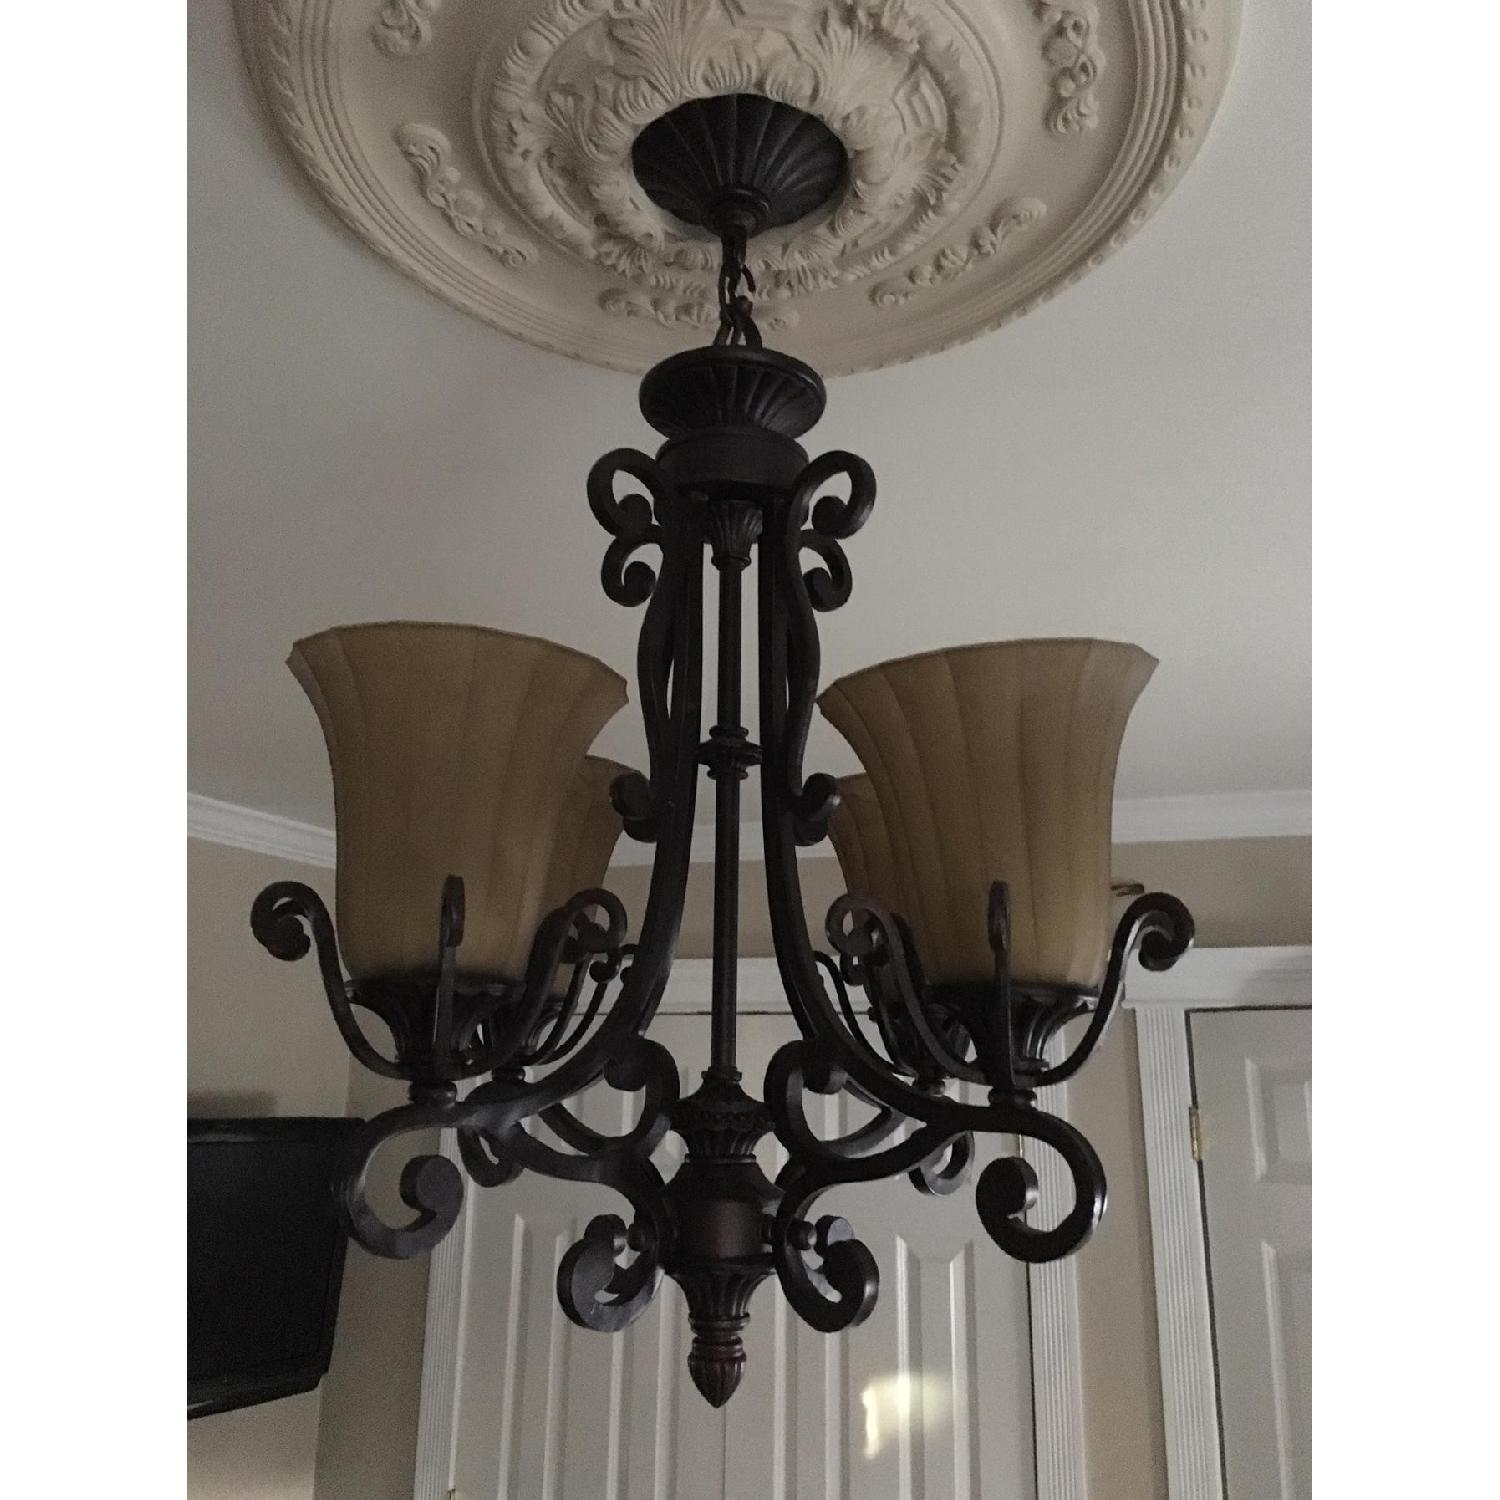 Rustic Themed 4 Light Candelabra Chandelier-3